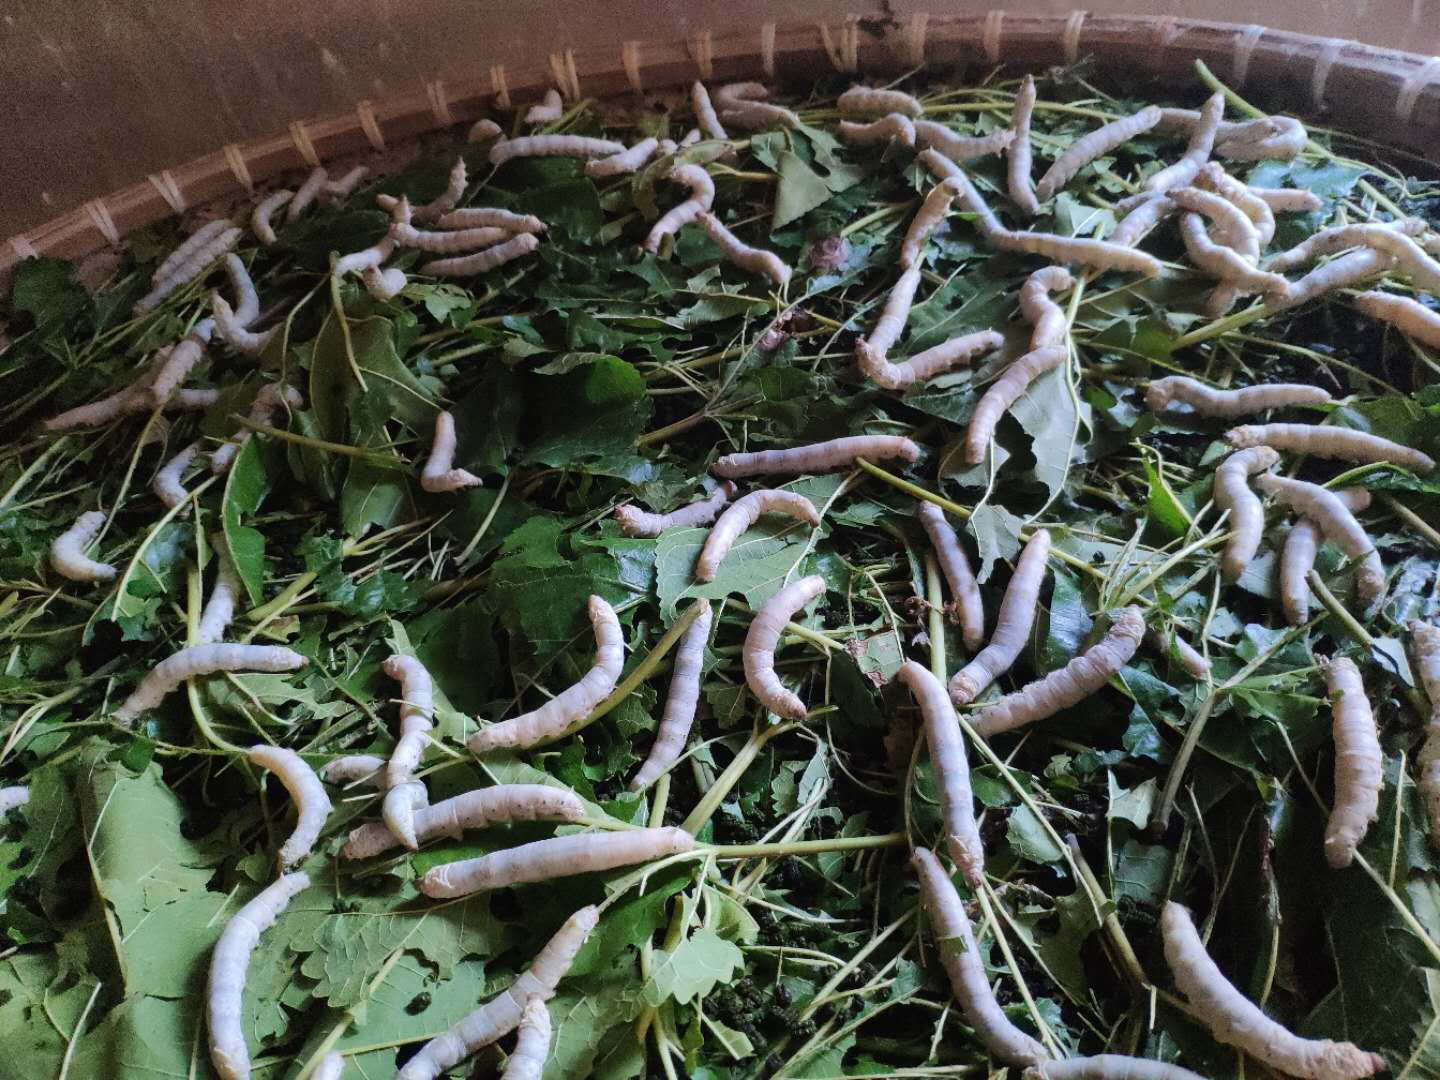 A close up of many silkworms on top of a bed of leafy greens.